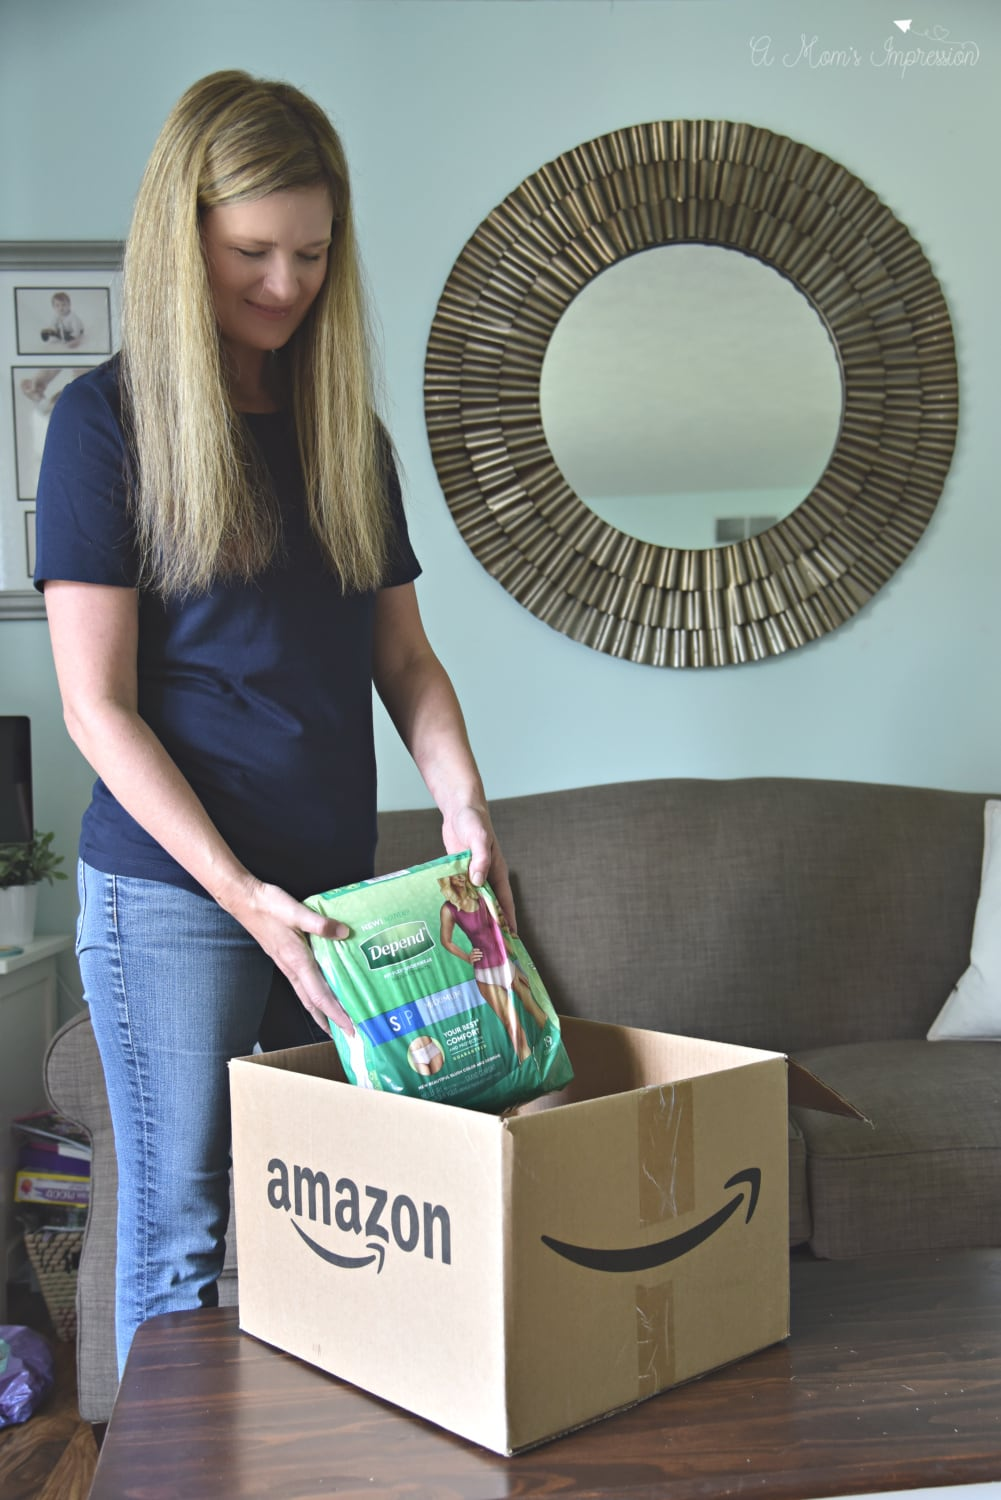 Depend delivery in an amazon box